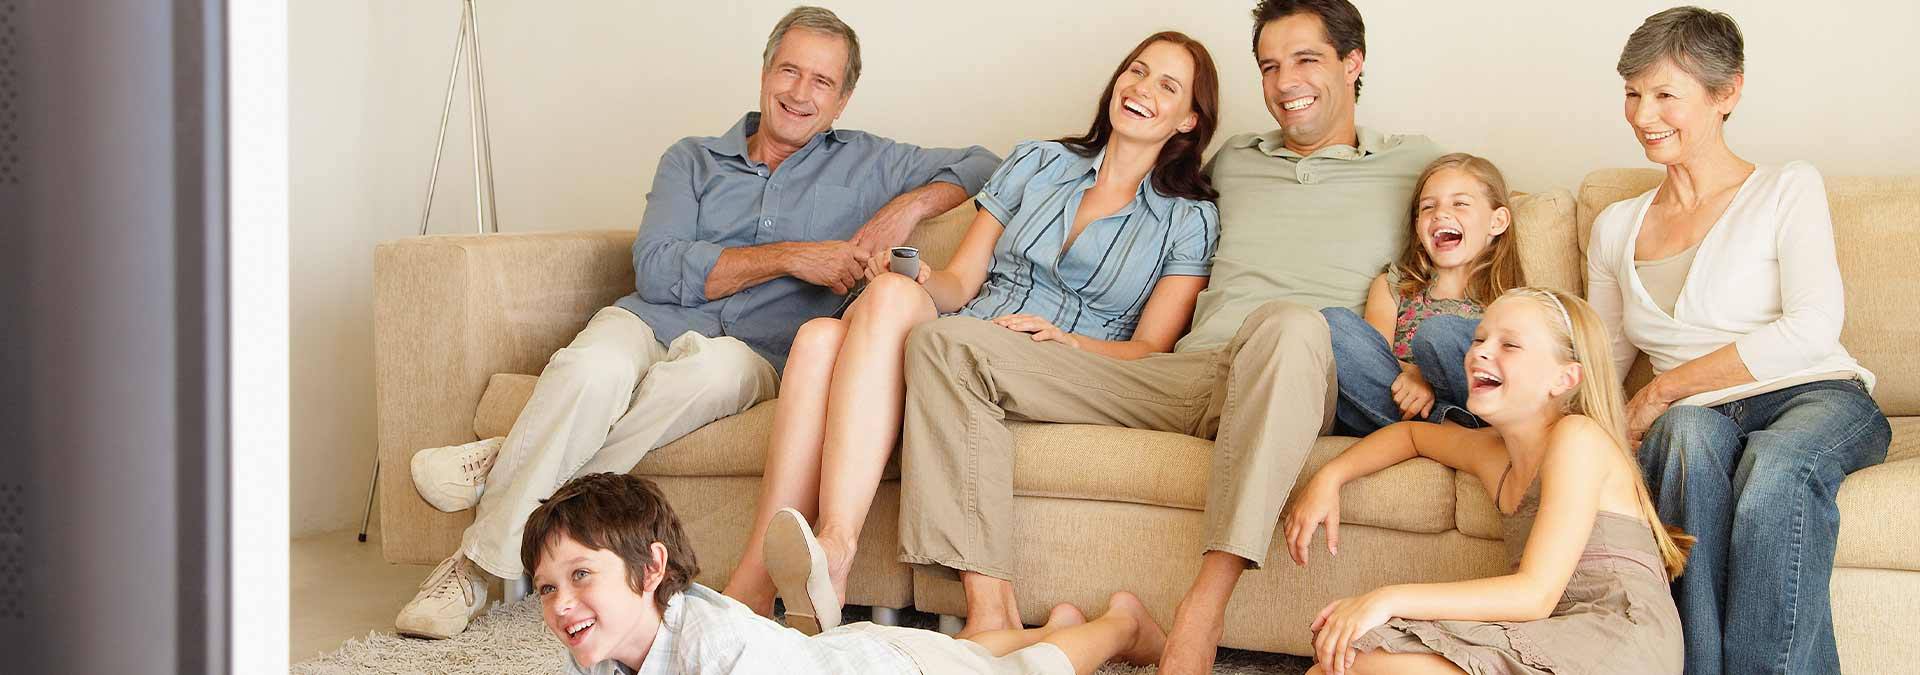 Family sat together watching the television